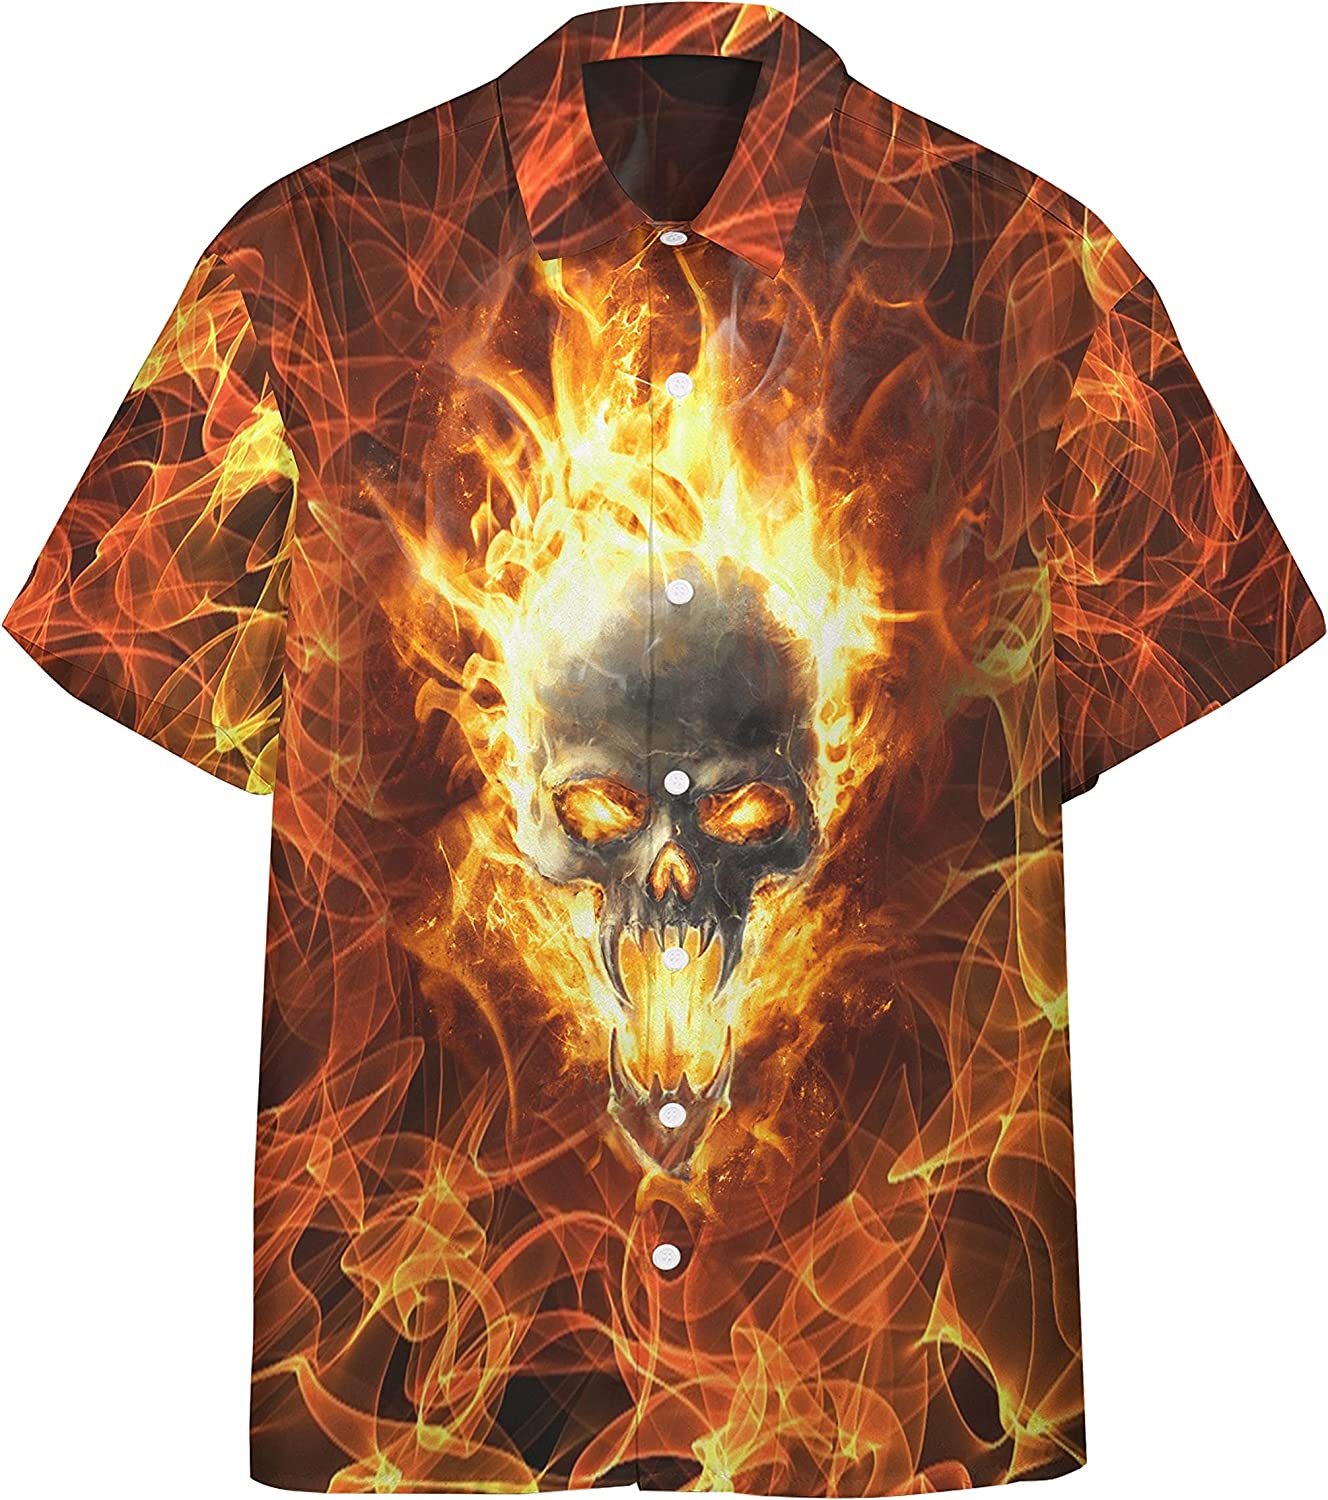 San Francisco Mall XStyles18 3D Flaming Super intense SALE Skull find fire Custom Shirt Your Hawaii